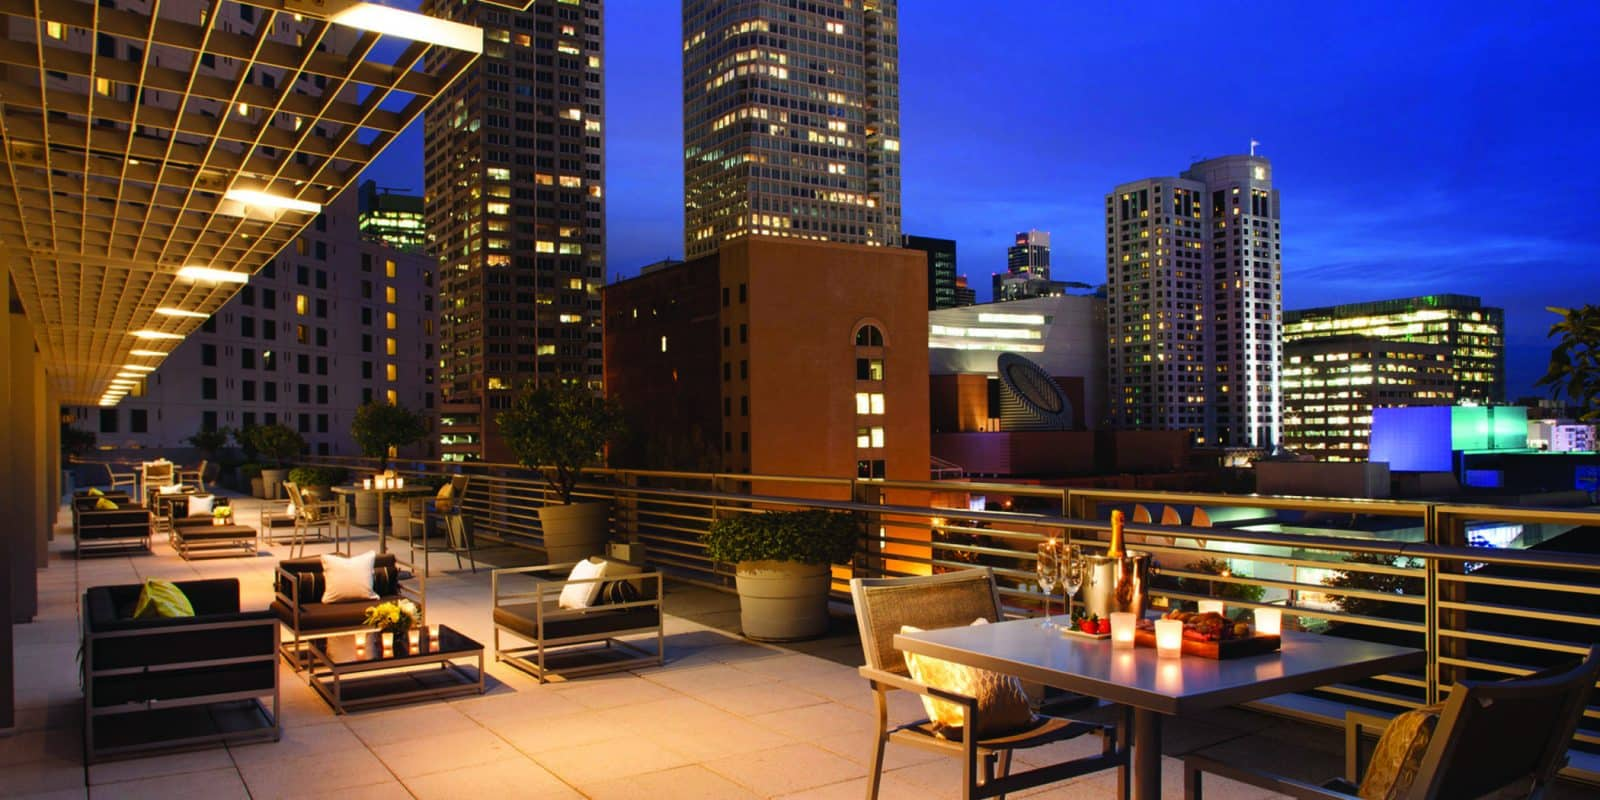 Four Seasons Hotel San Francisco, CA is one of the 50 Best Hotels in the United States